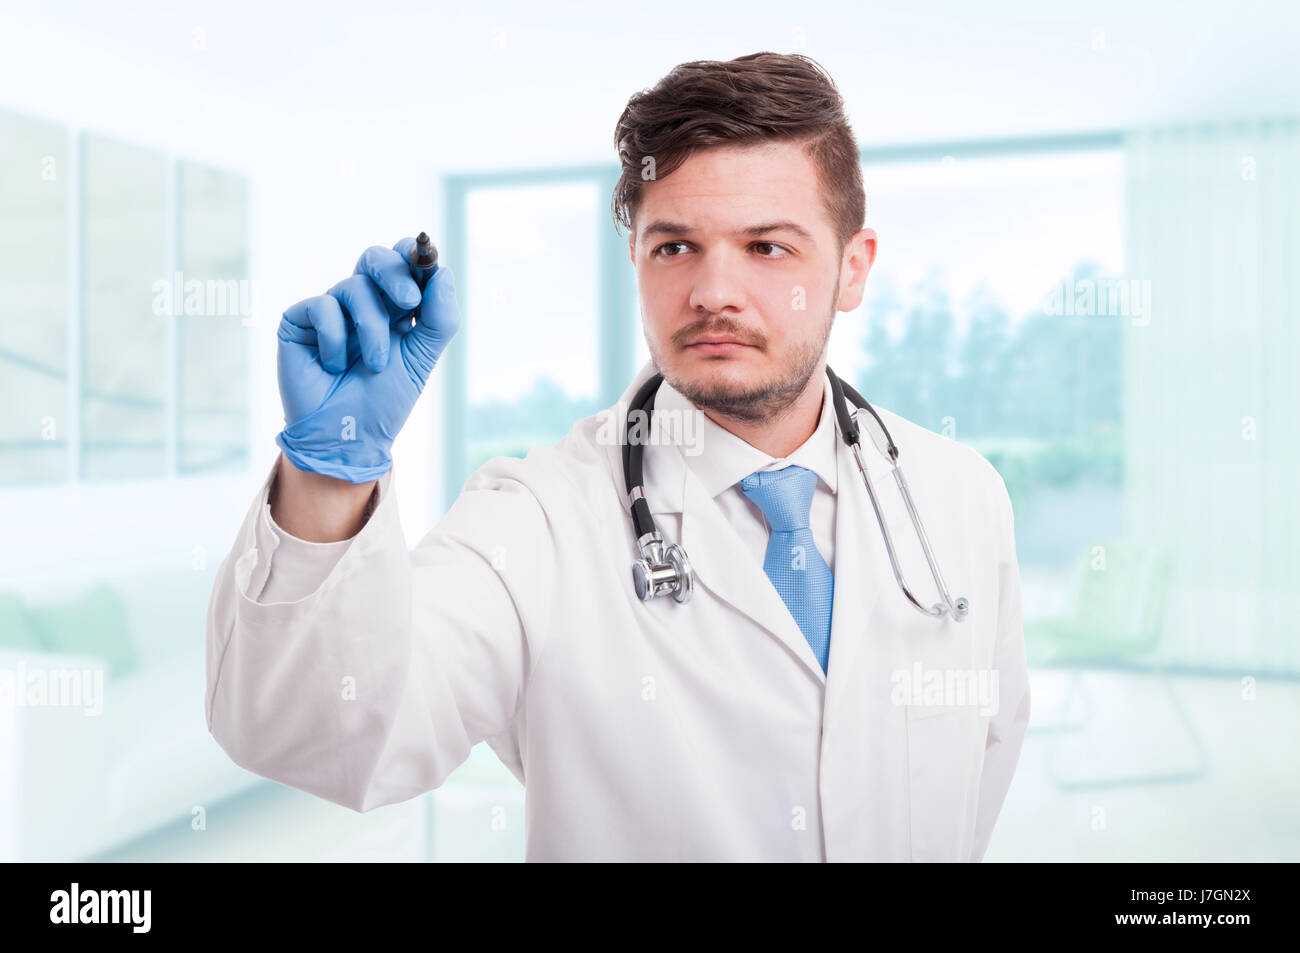 Confident doctor writing something in the air with marker on imaginary screen - Stock Image